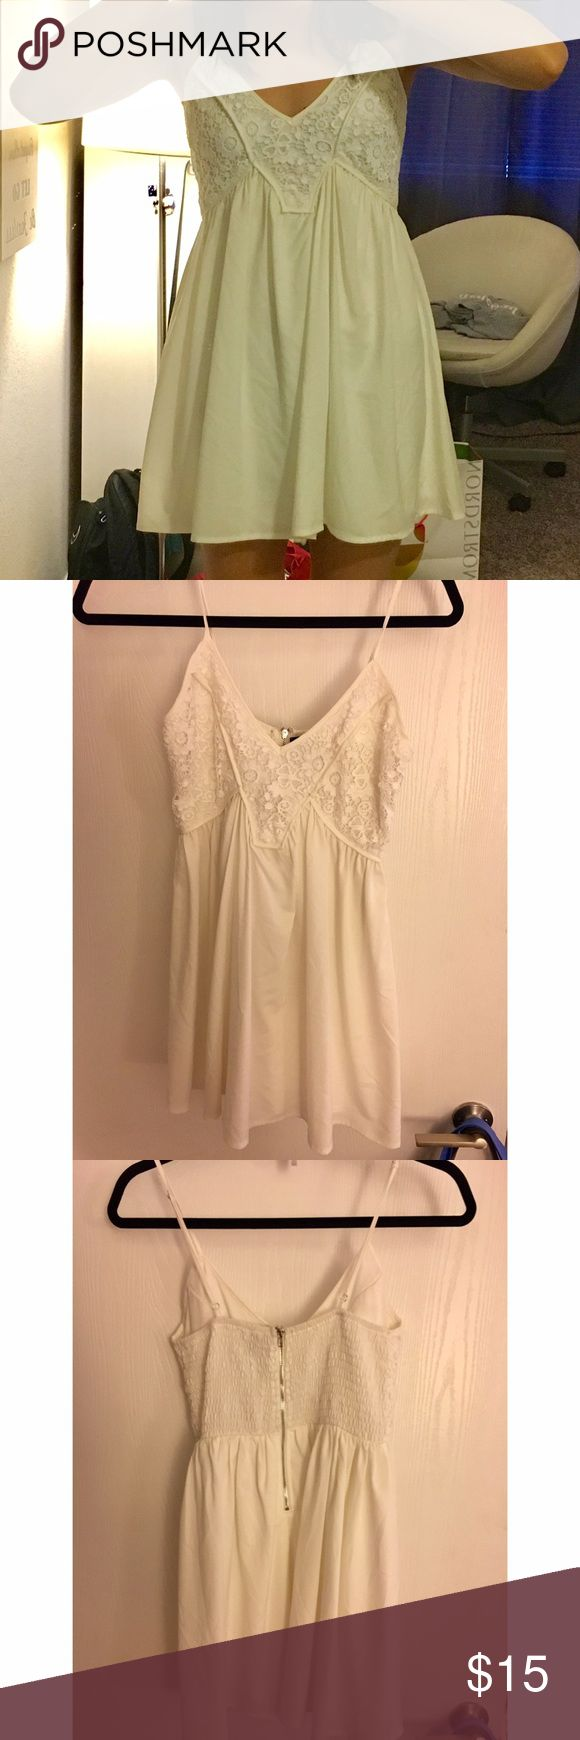 White Babydoll Australian dress One Way is an Australian brand. Dress says size 8 but this fits similar to a size 2. I usually wear dresses that are size small or 2. Material is stretchy and very comfortable. Straps are adjustable. One Way Dresses